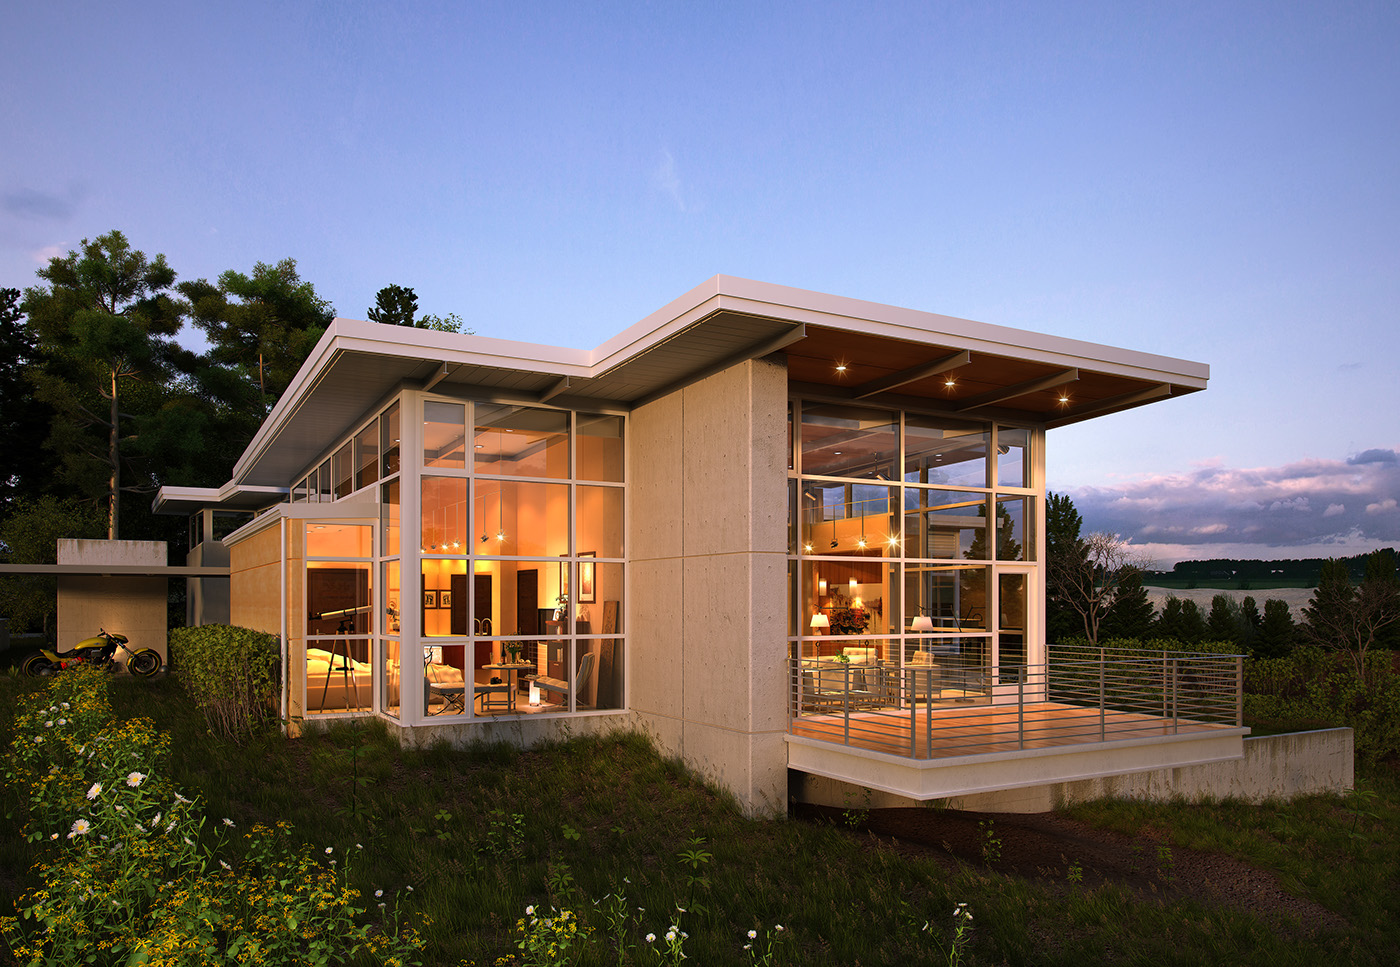 The walnut house exterior on behance for Model home exterior photos